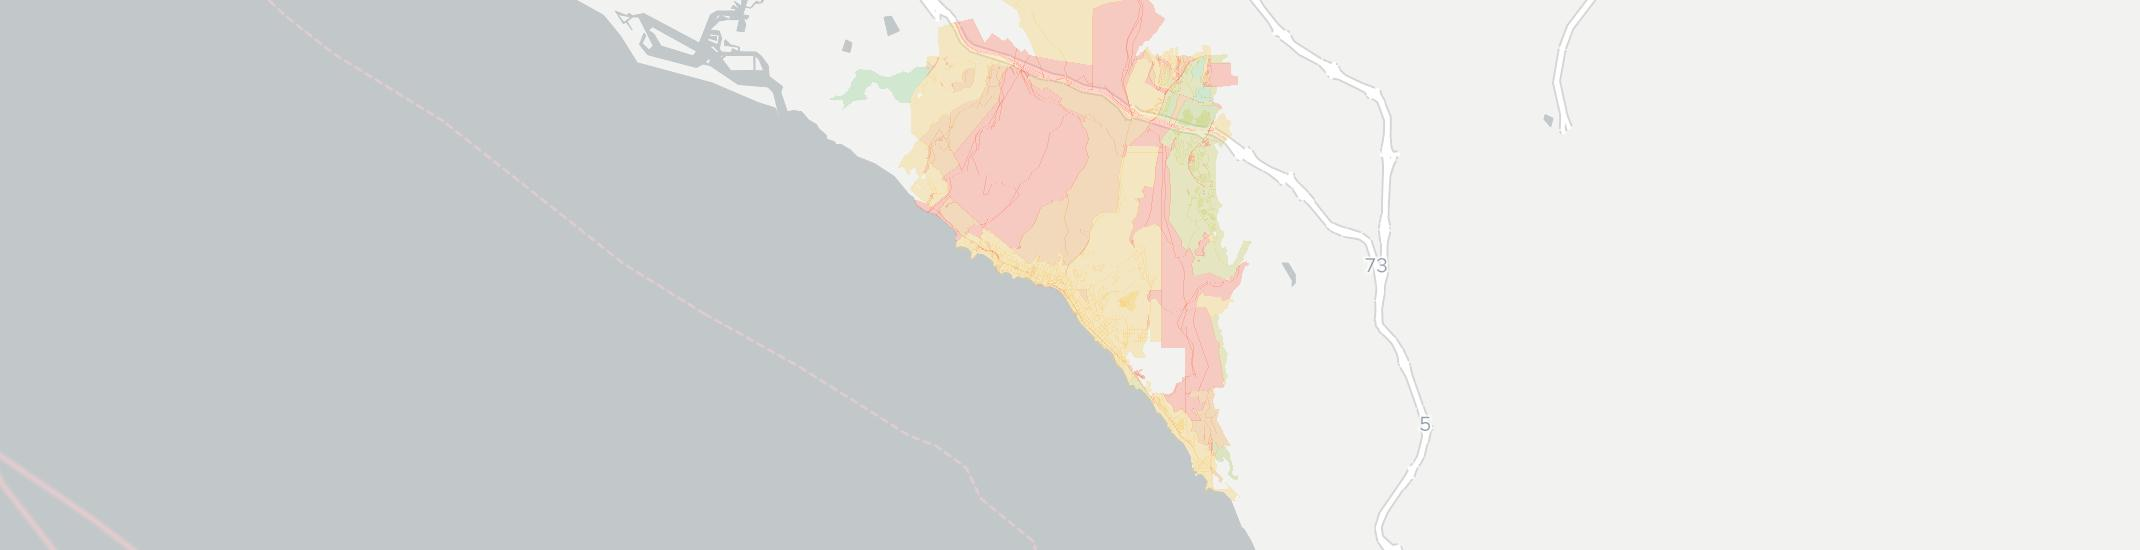 Laguna Beach Internet Competition Map. Click for interactive map.